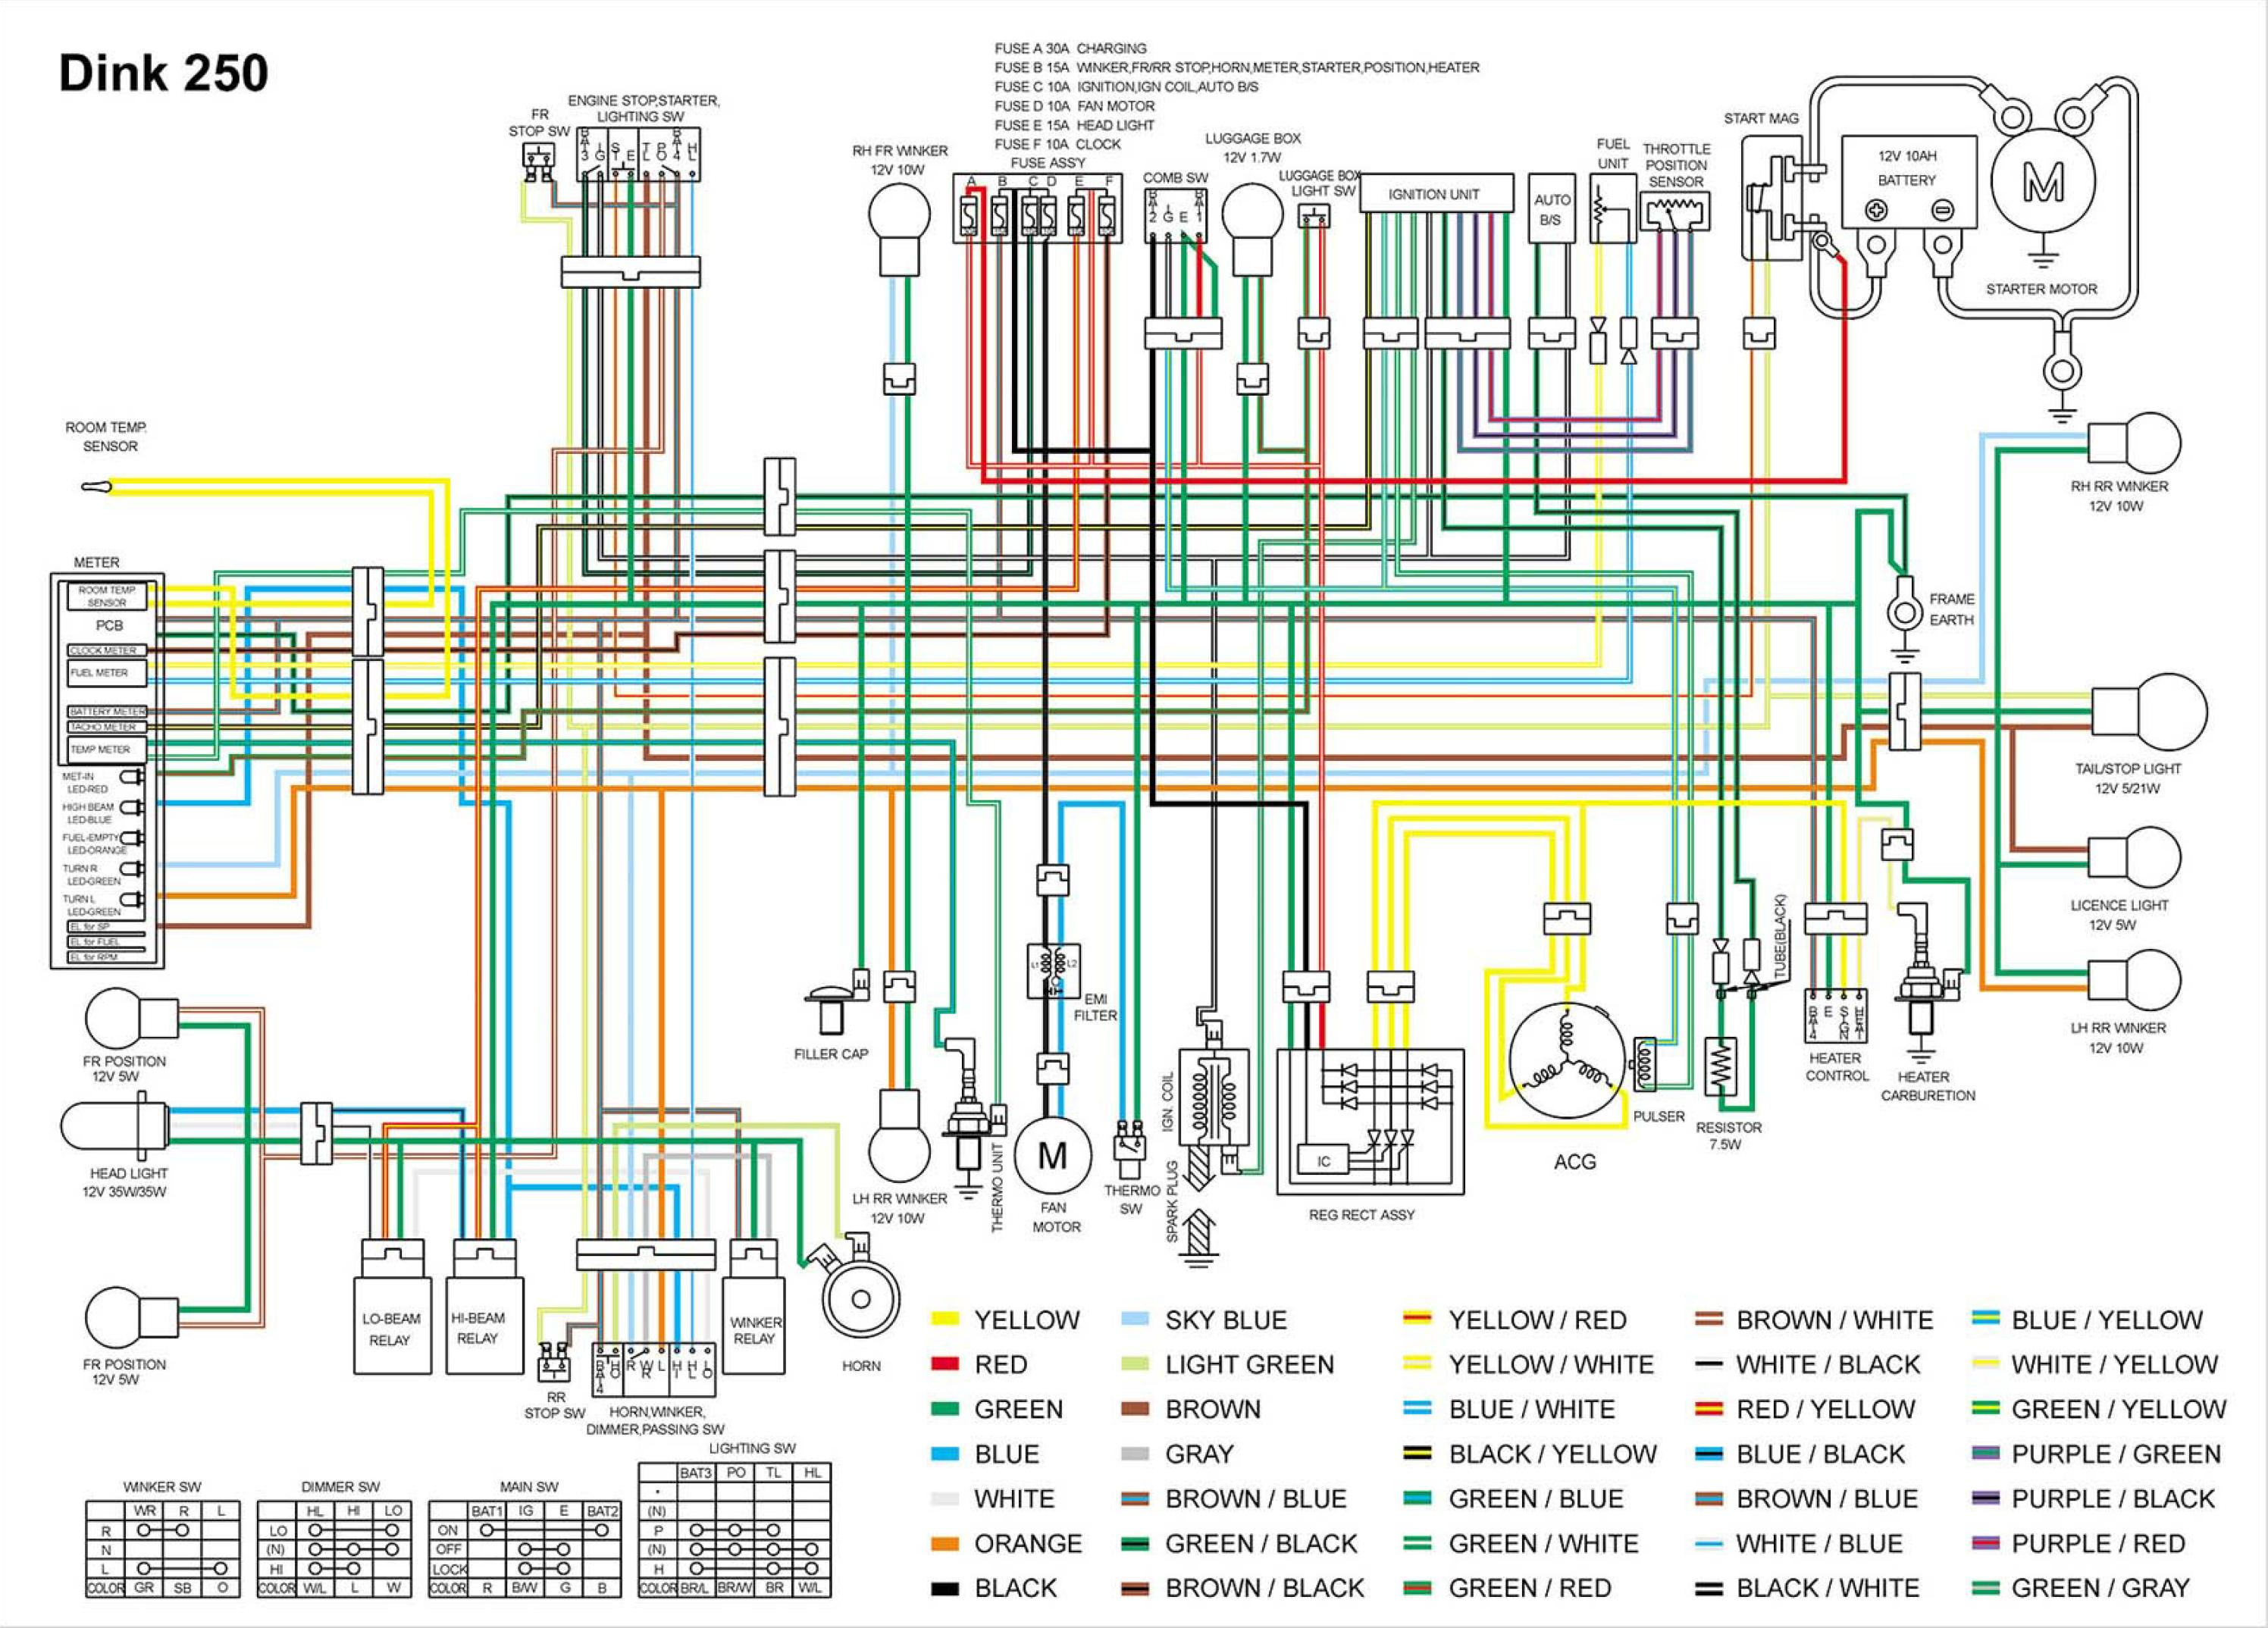 Wiring Diagram For Viva Scooter Page 3 And Schematics House Questions High Quality Images Radio 8desktop38 Gq Rh Car